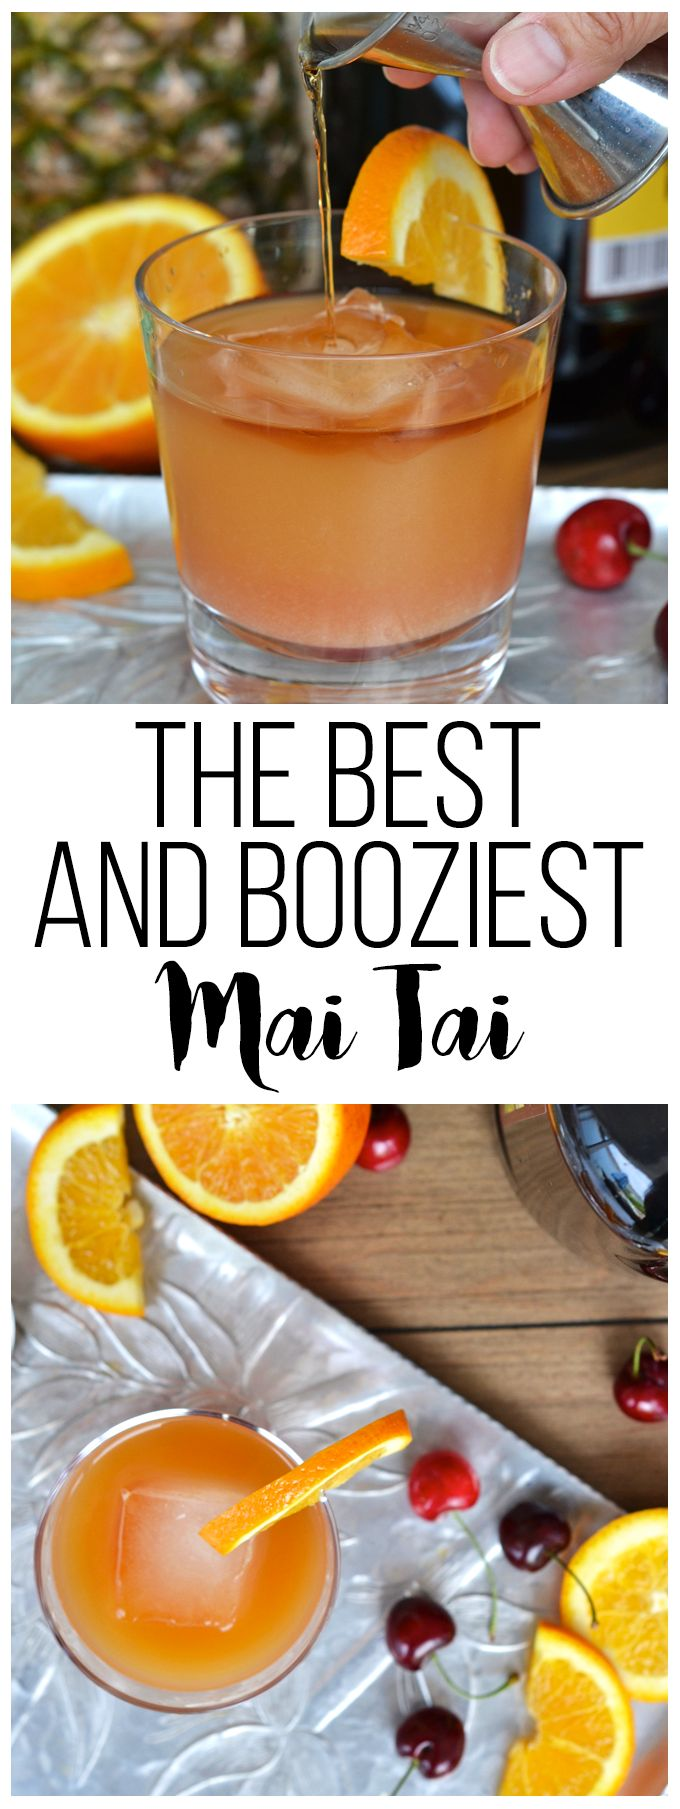 The best and booziest mai tai ever!! Perfect tropical summer cocktail!